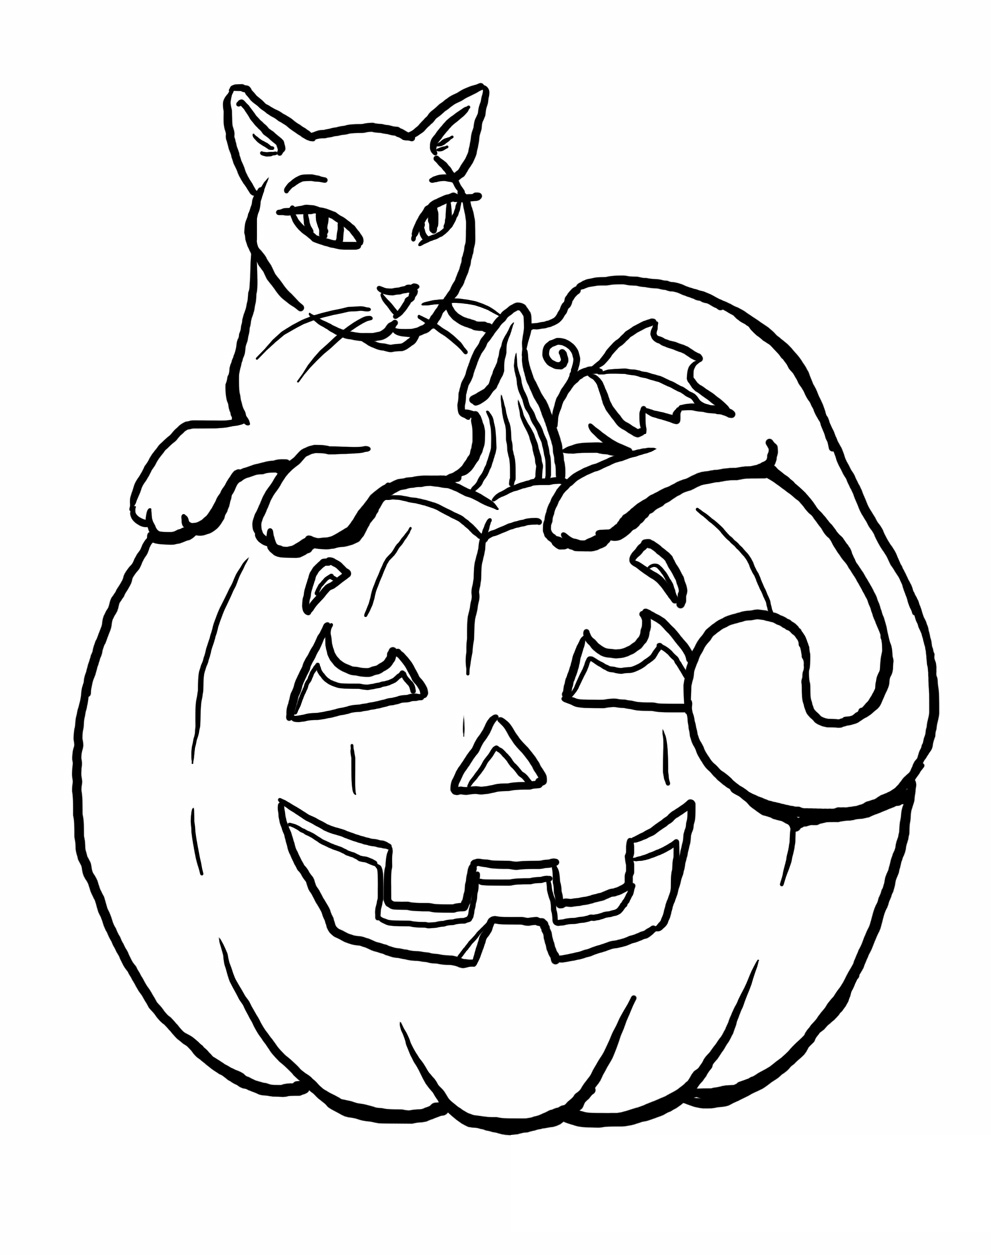 Black Cat Halloween Coloring Pages Printable | 1255x991